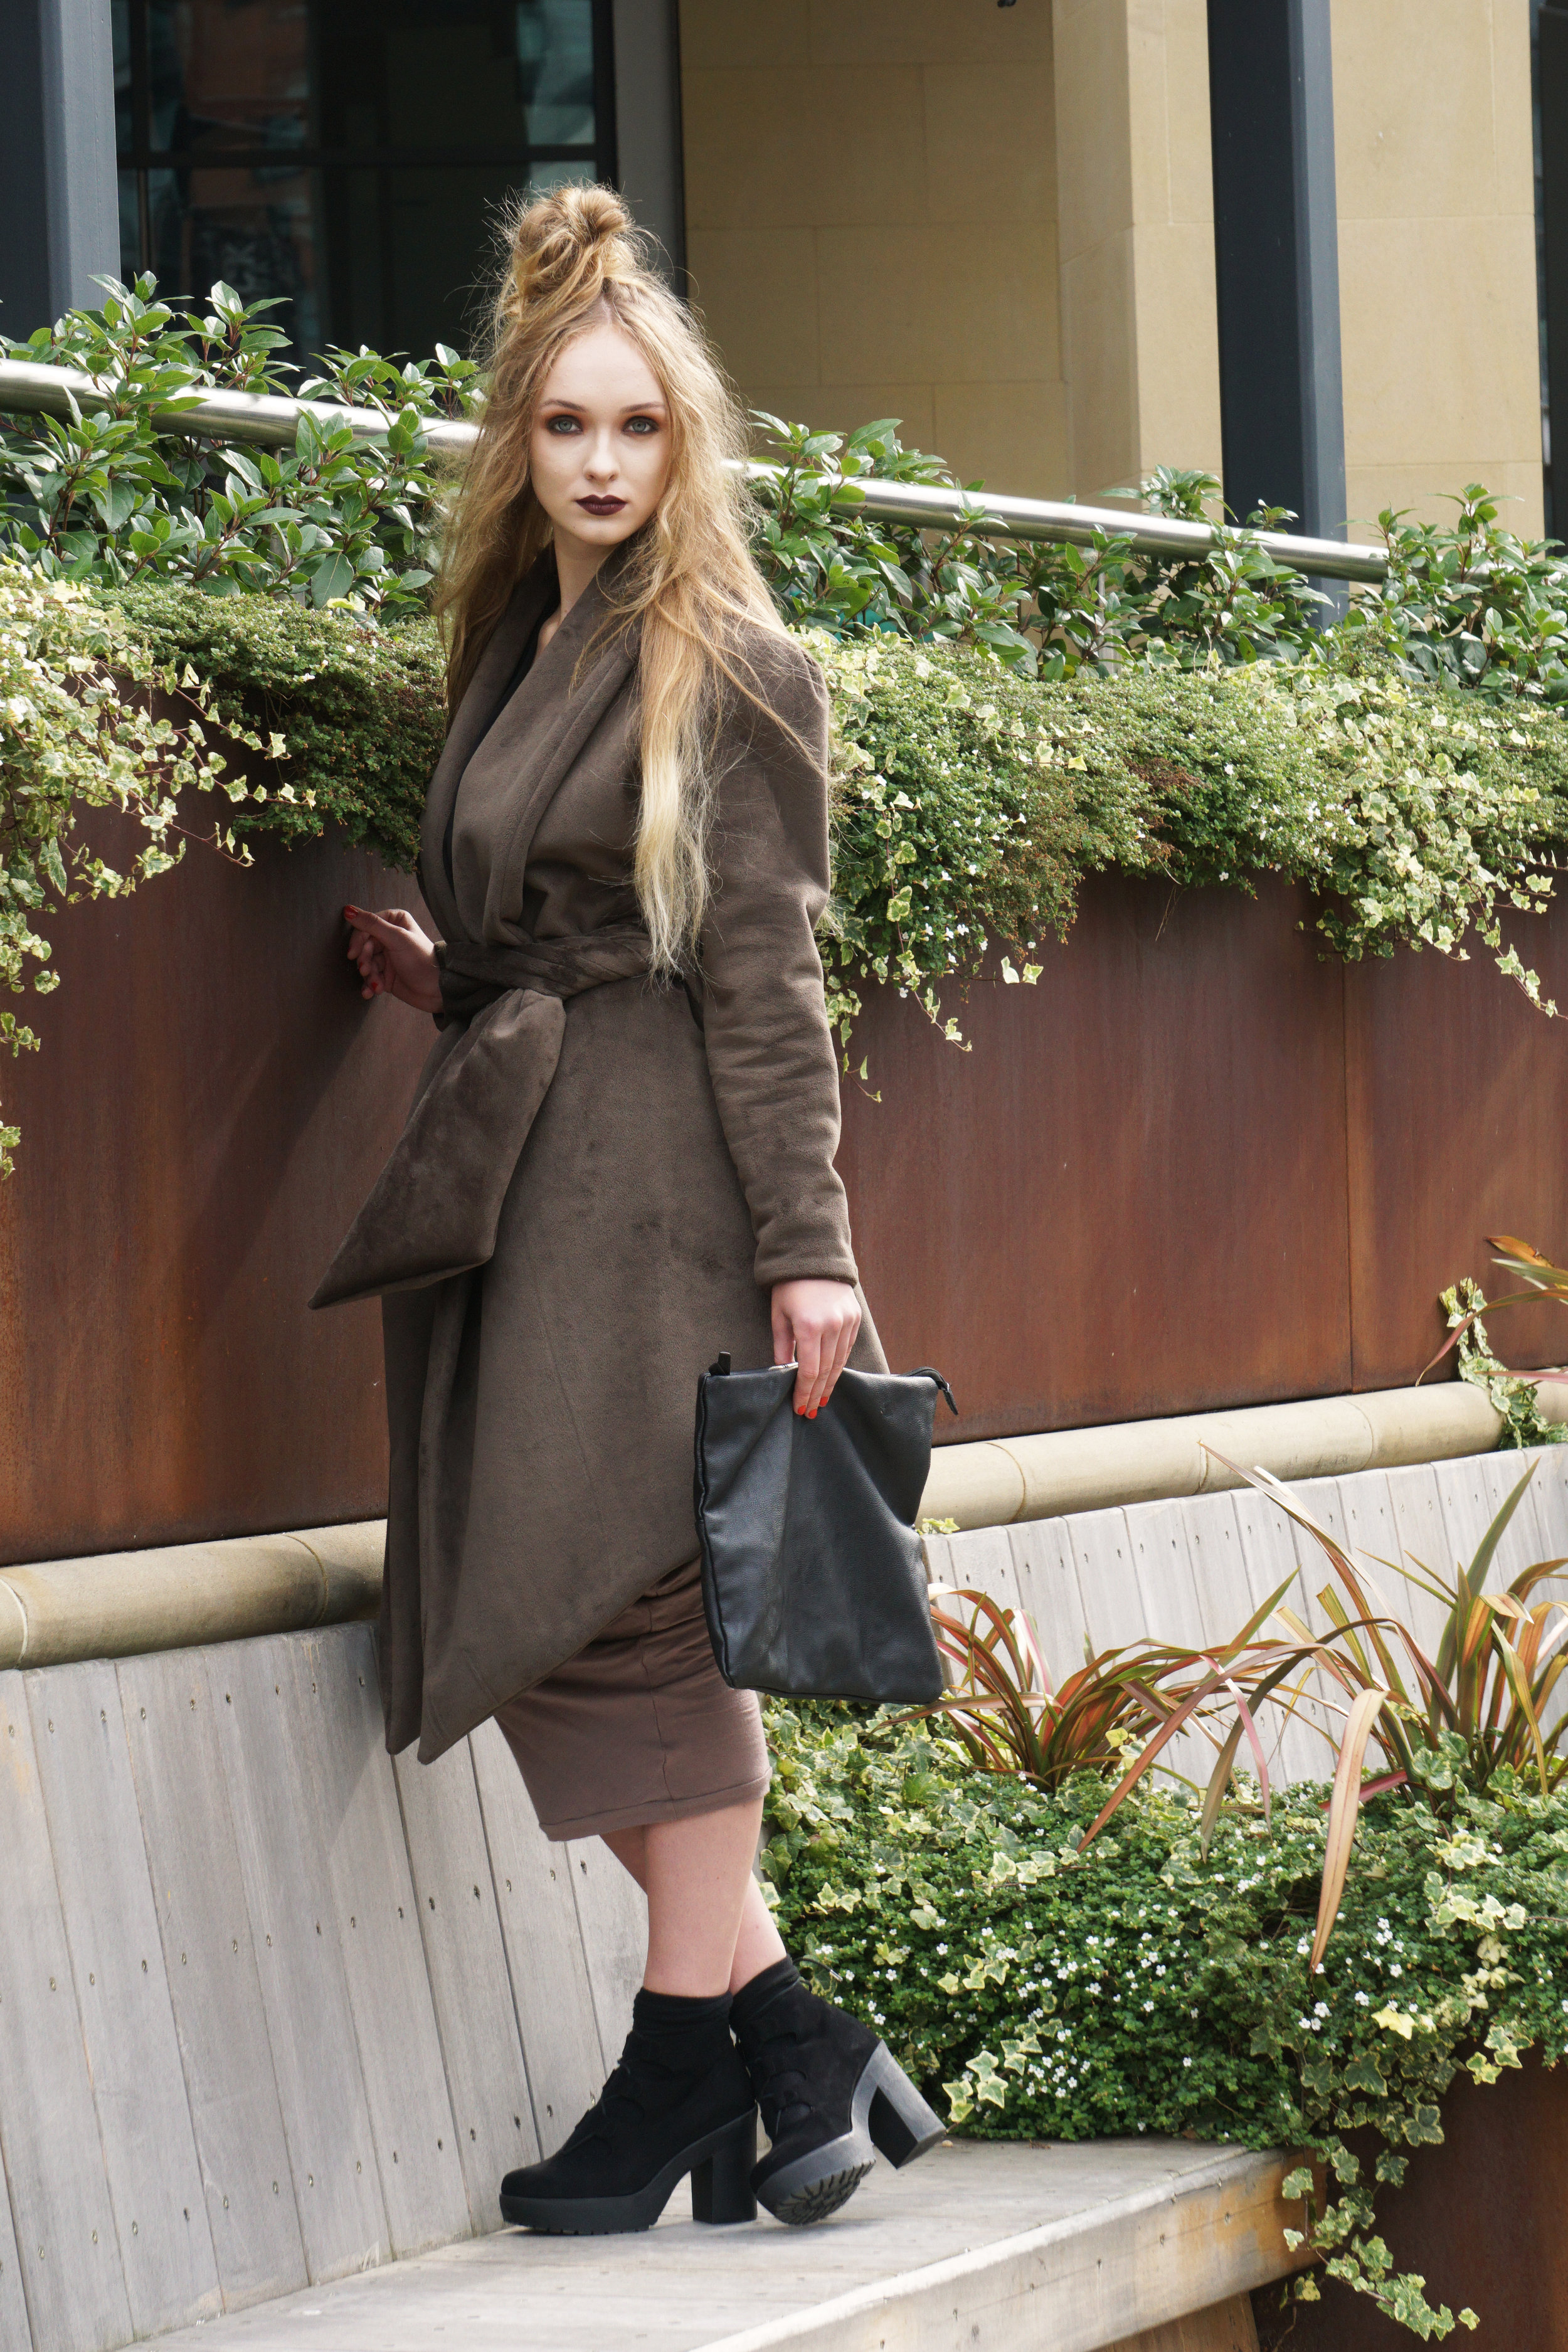 zaramia-ava-zaramiaava-leeds-fashion-designer-ethical-sustainable-taupe-versatile-drape-yoko-skirt-mioka-black-mai-coat-leeds-dock-grunge-clutch-bag-12